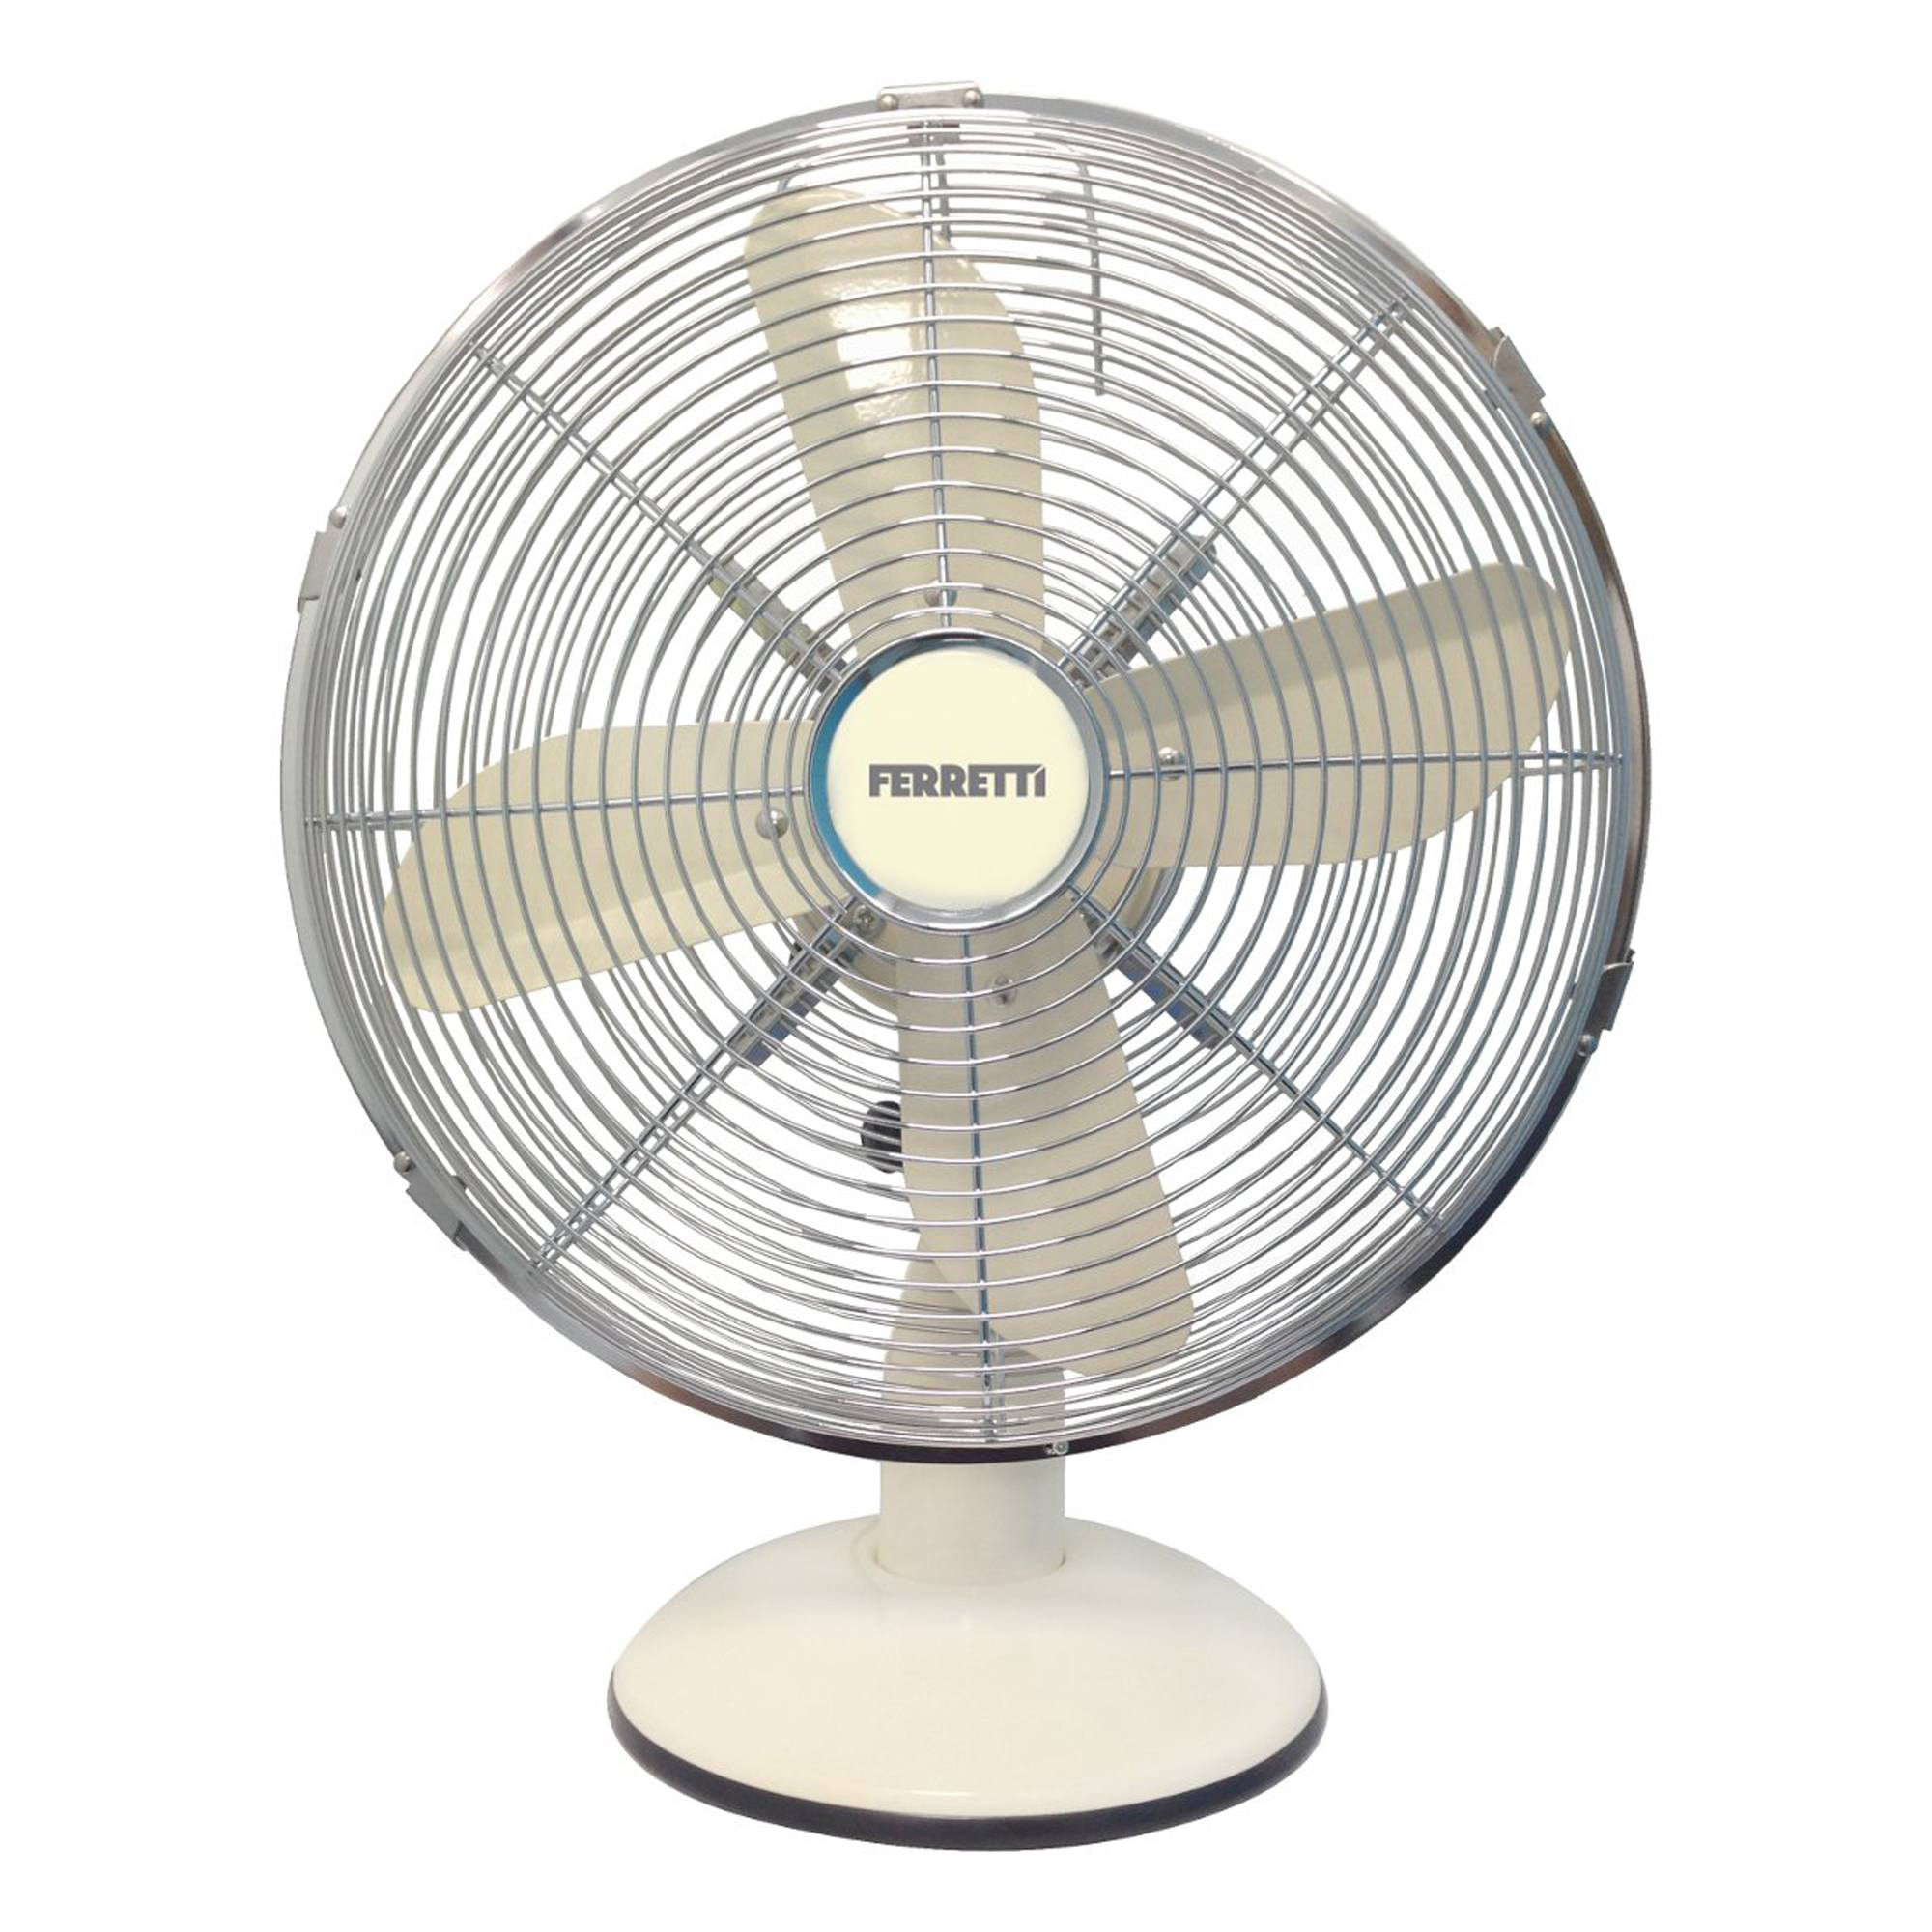 Ferretti Fertdf120cr 30cm Retro Metal Desk Fan In Cream